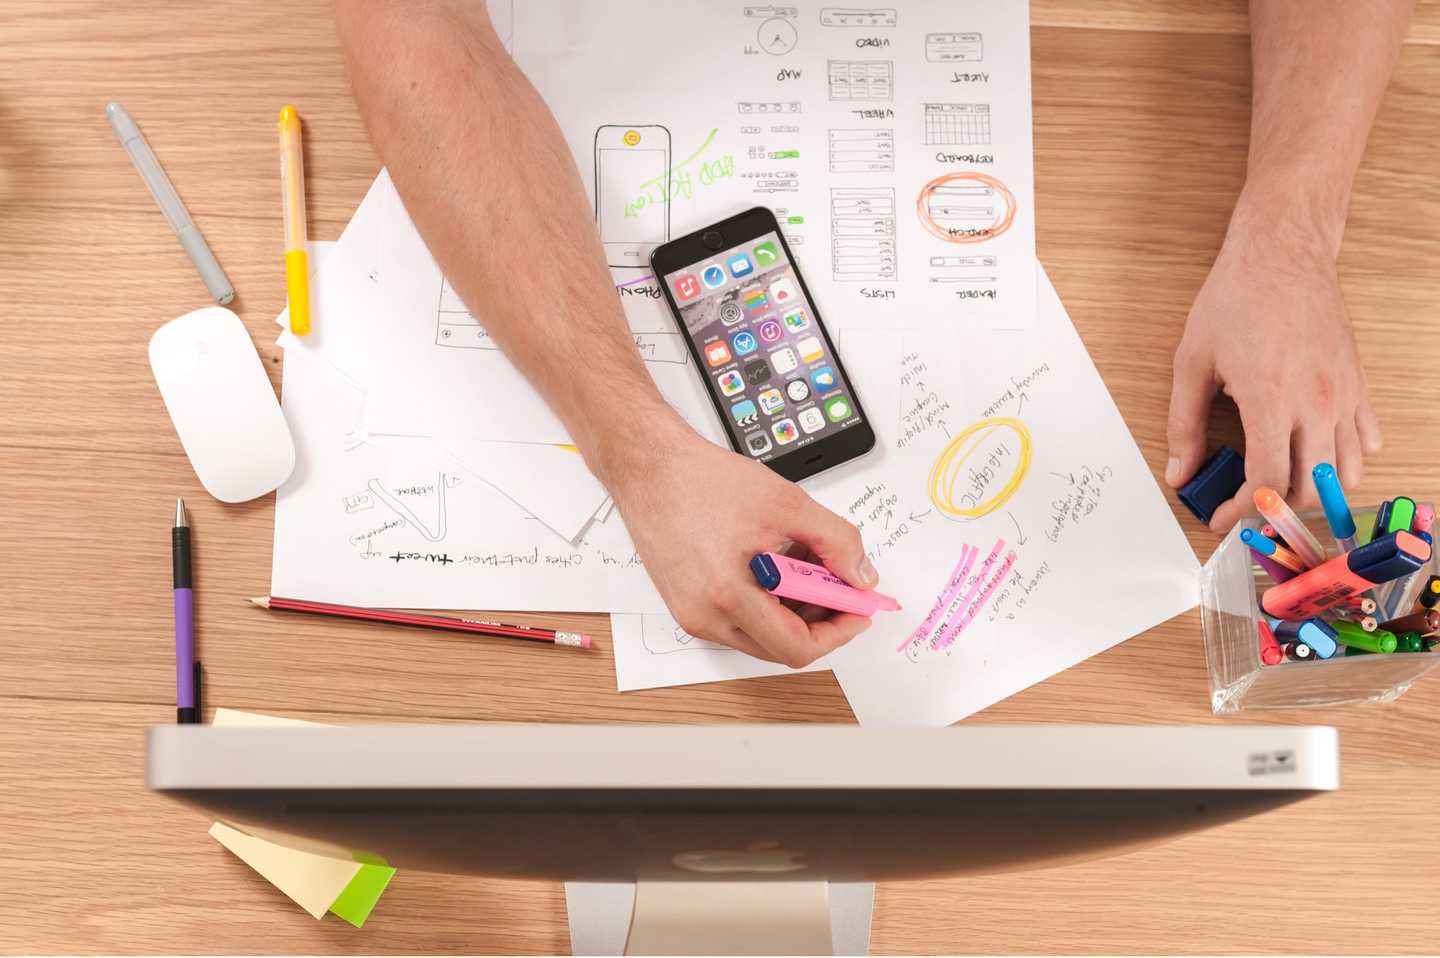 Convince your company to invest in design